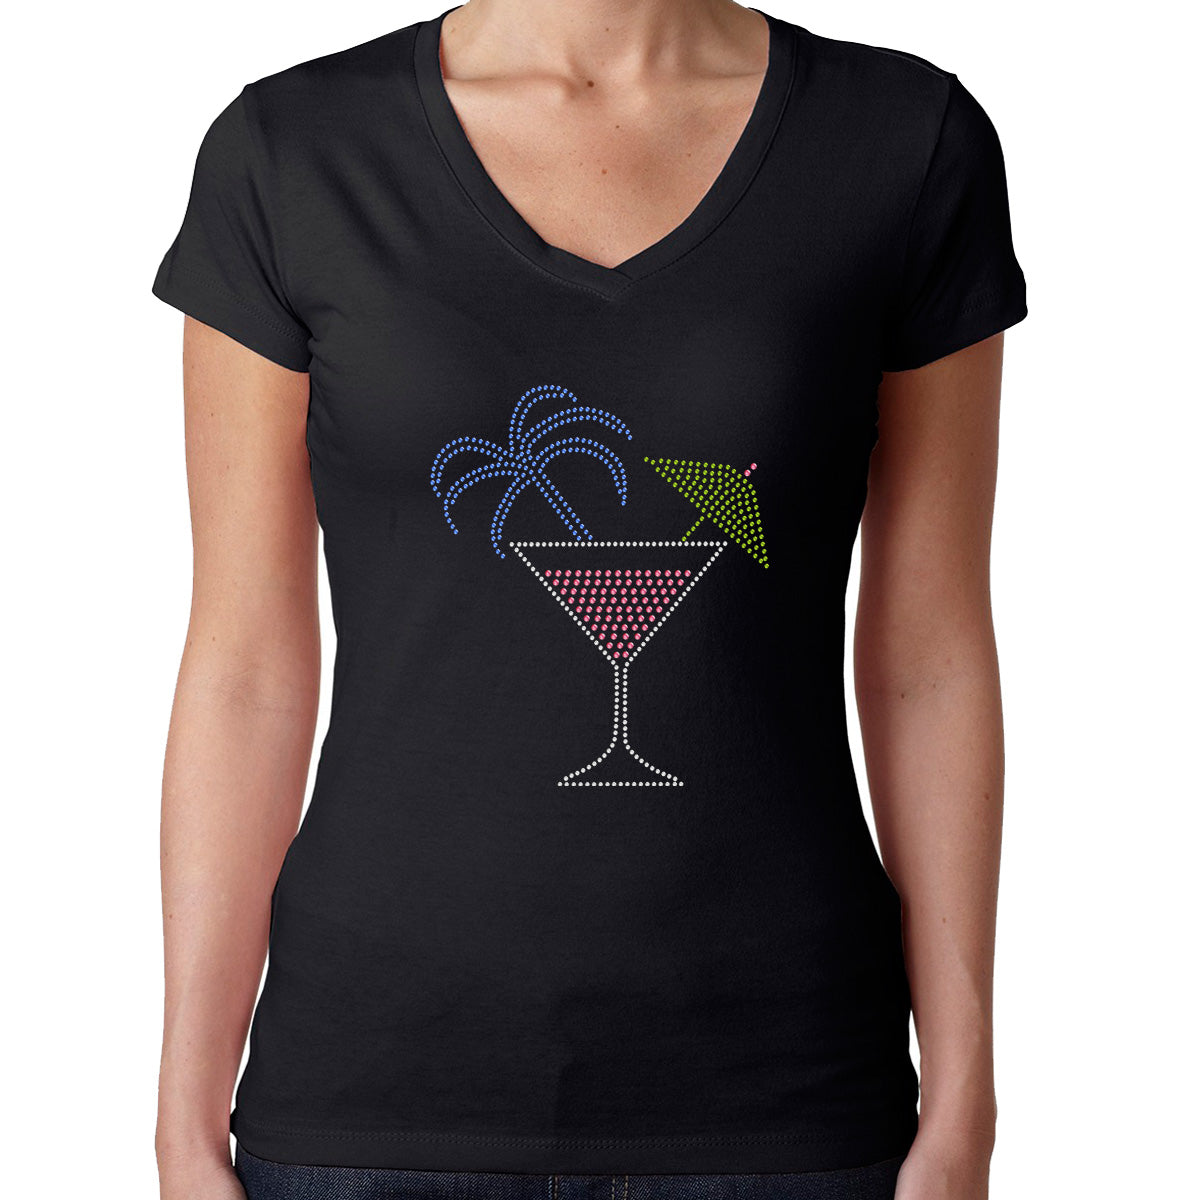 Womens T-Shirt Rhinestone Bling Black Fitted Tee Tropic Caribbean Drink Glass